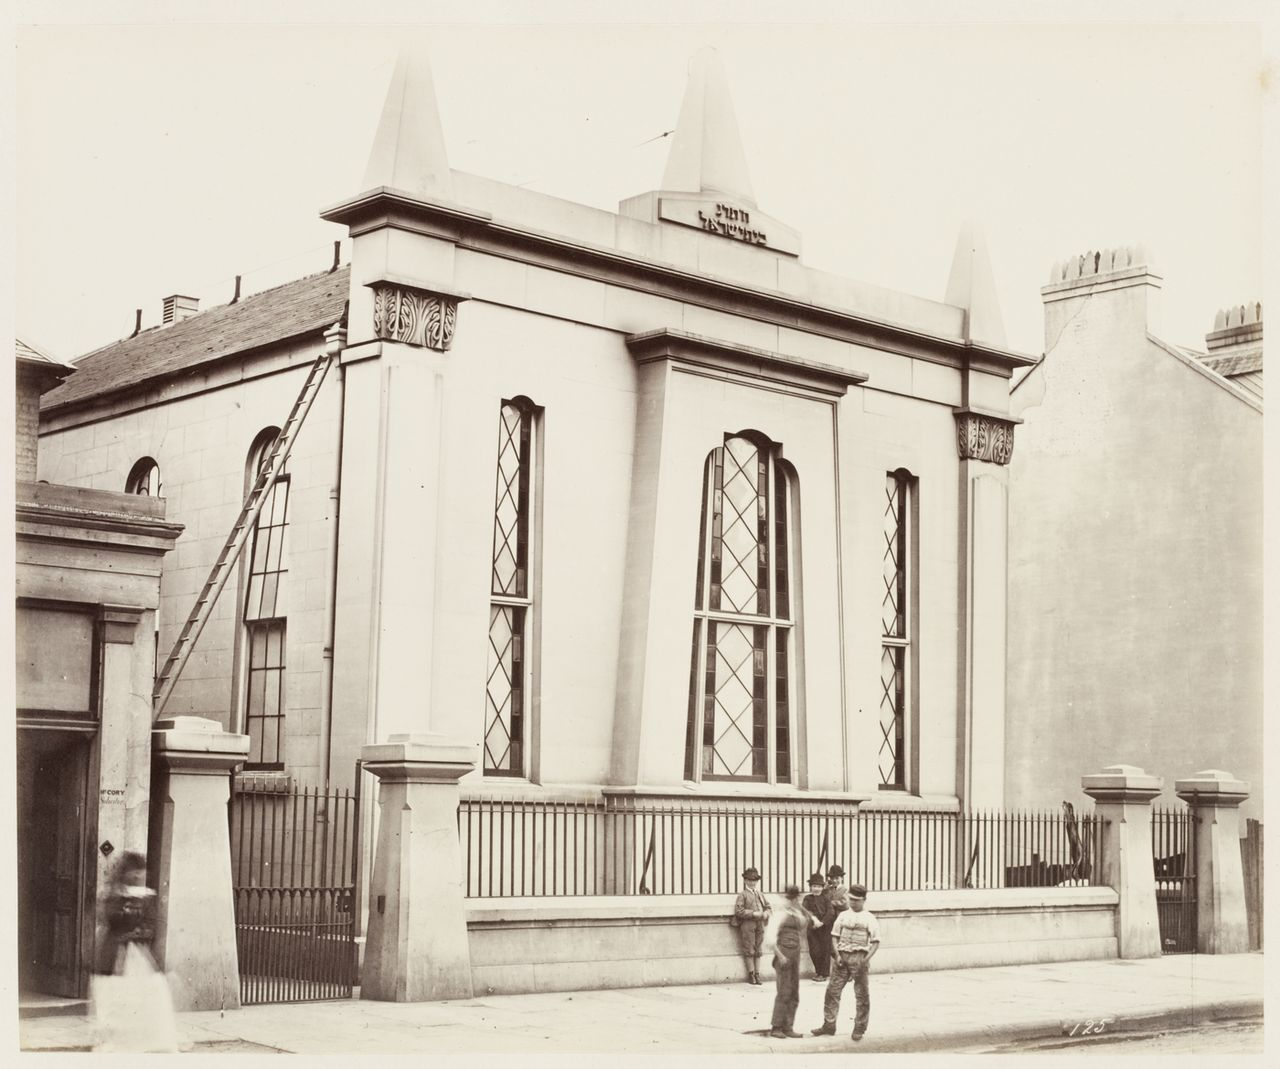 The Great Synagogue (1878) in Sydney, Australia.